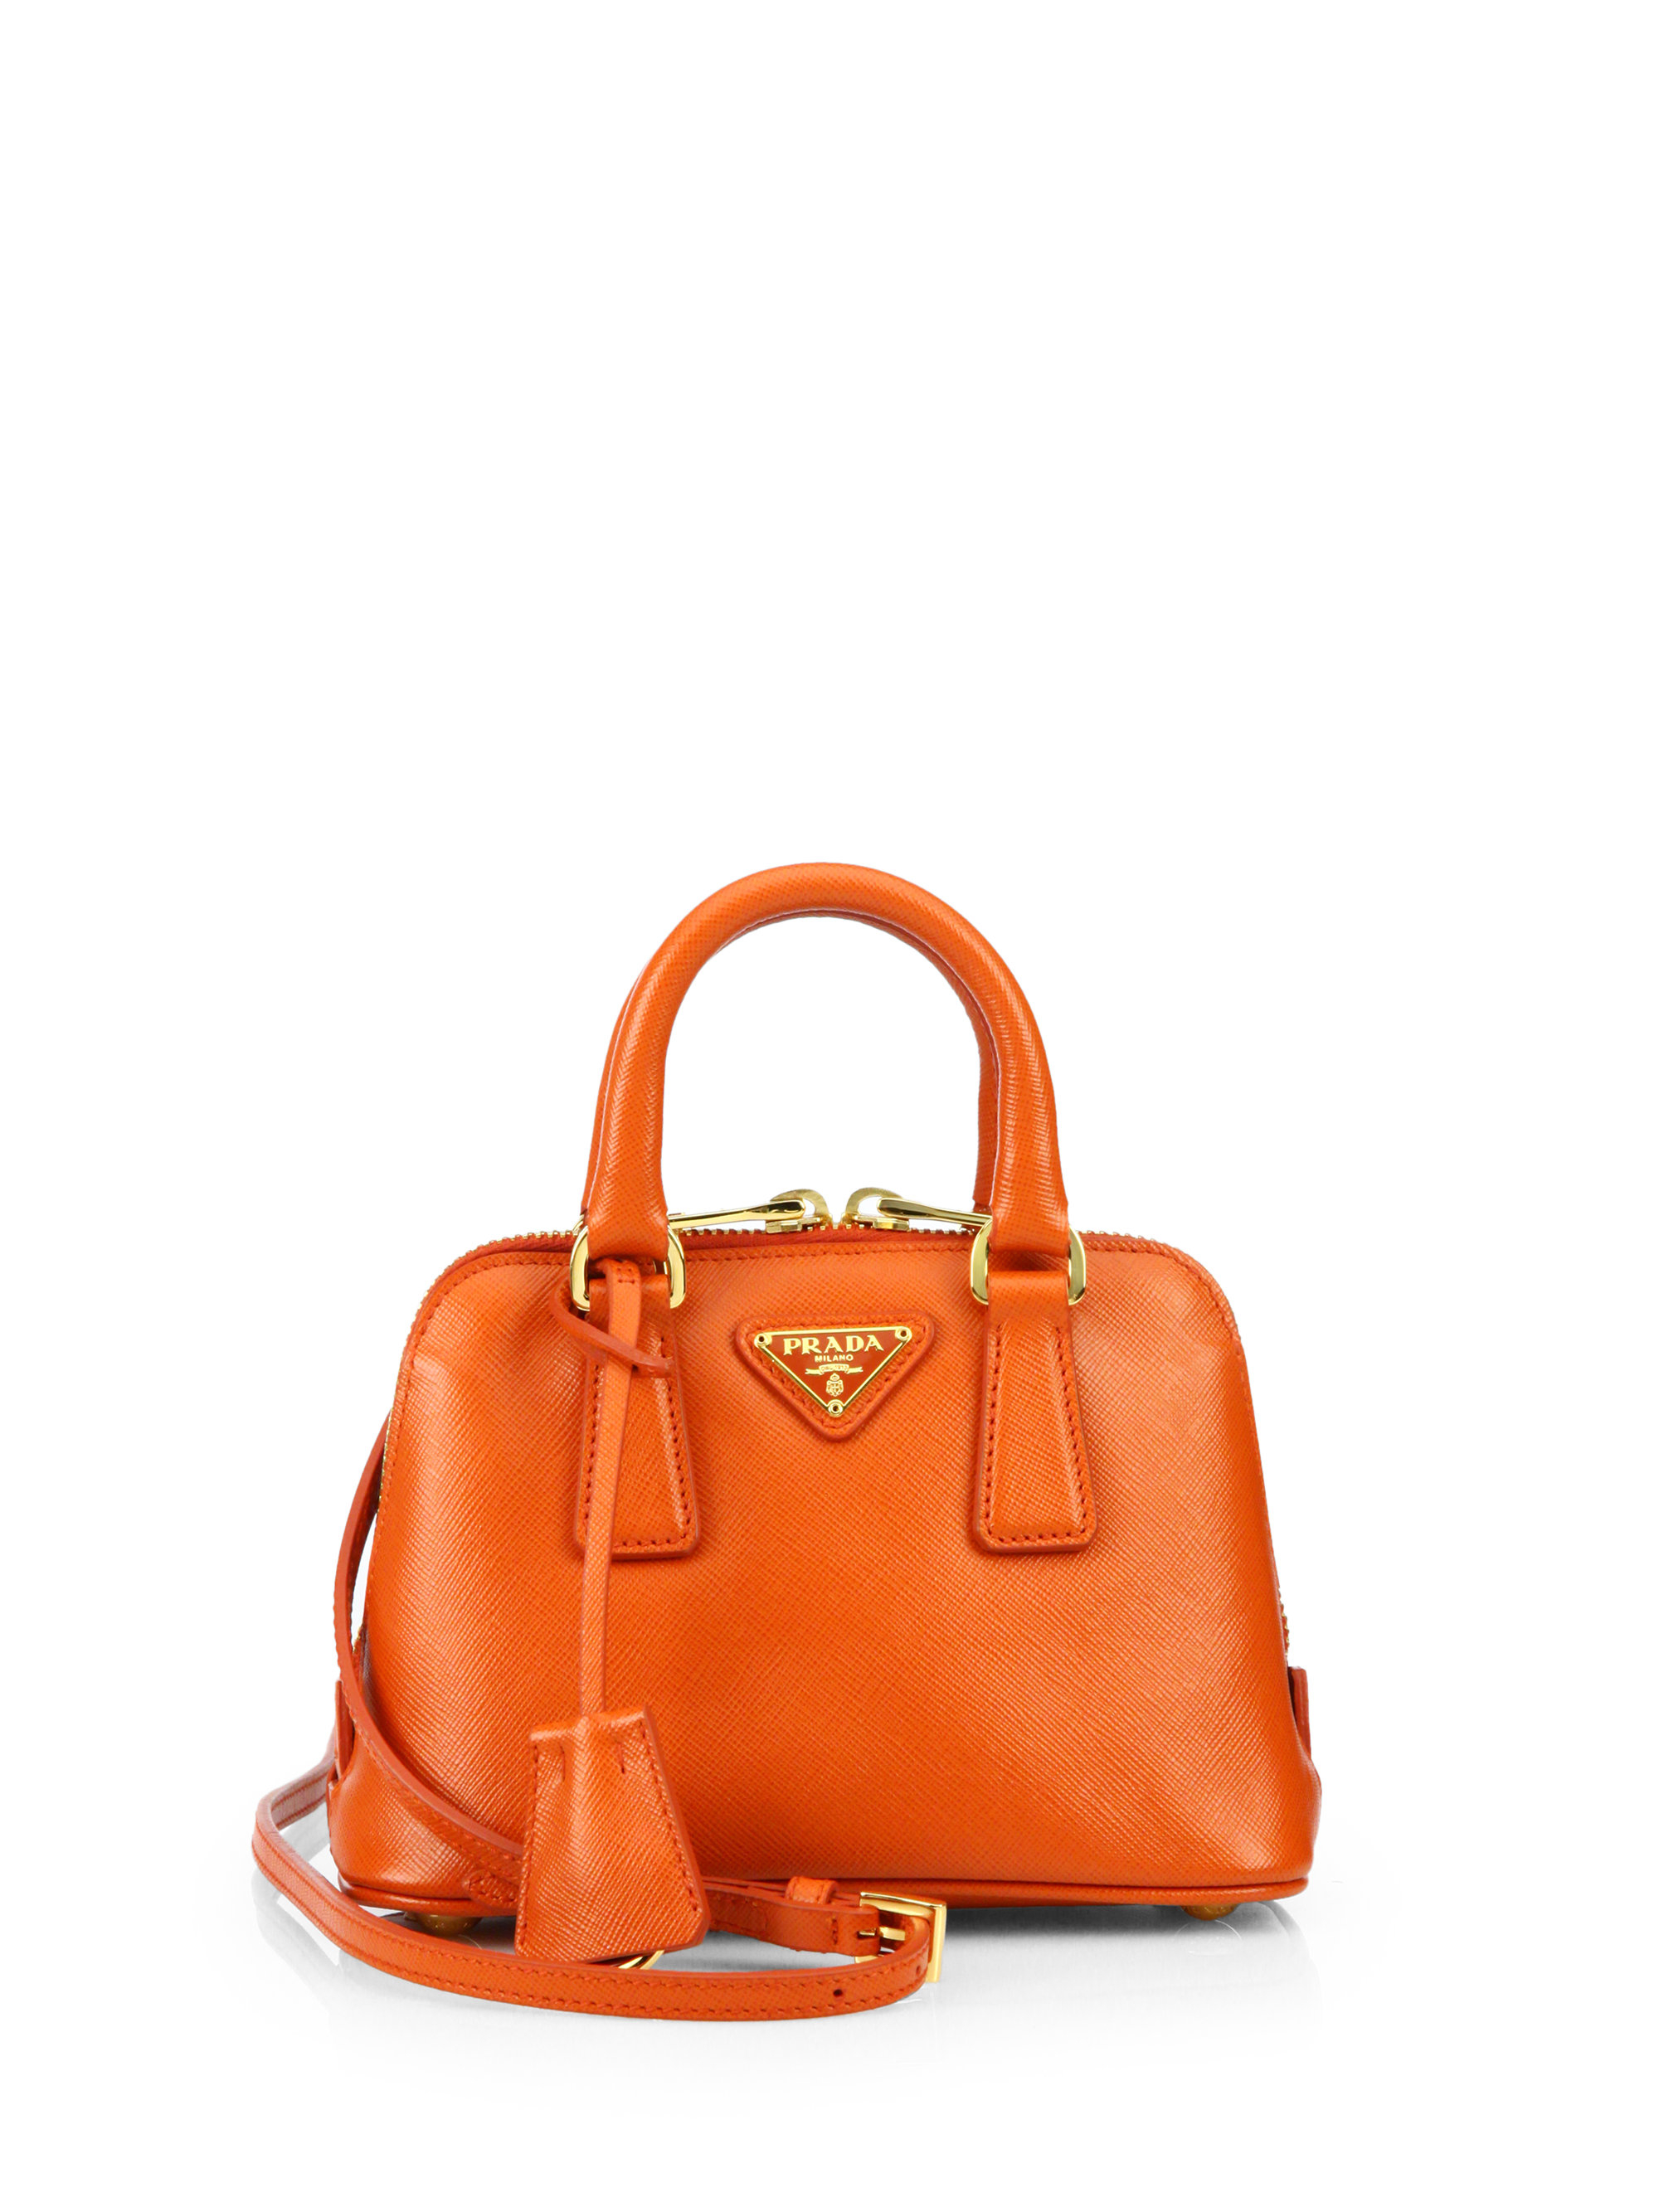 pranda bag - Prada Saffiano Lux Double Handle Mini Satchel in Orange (PAPAYA ...